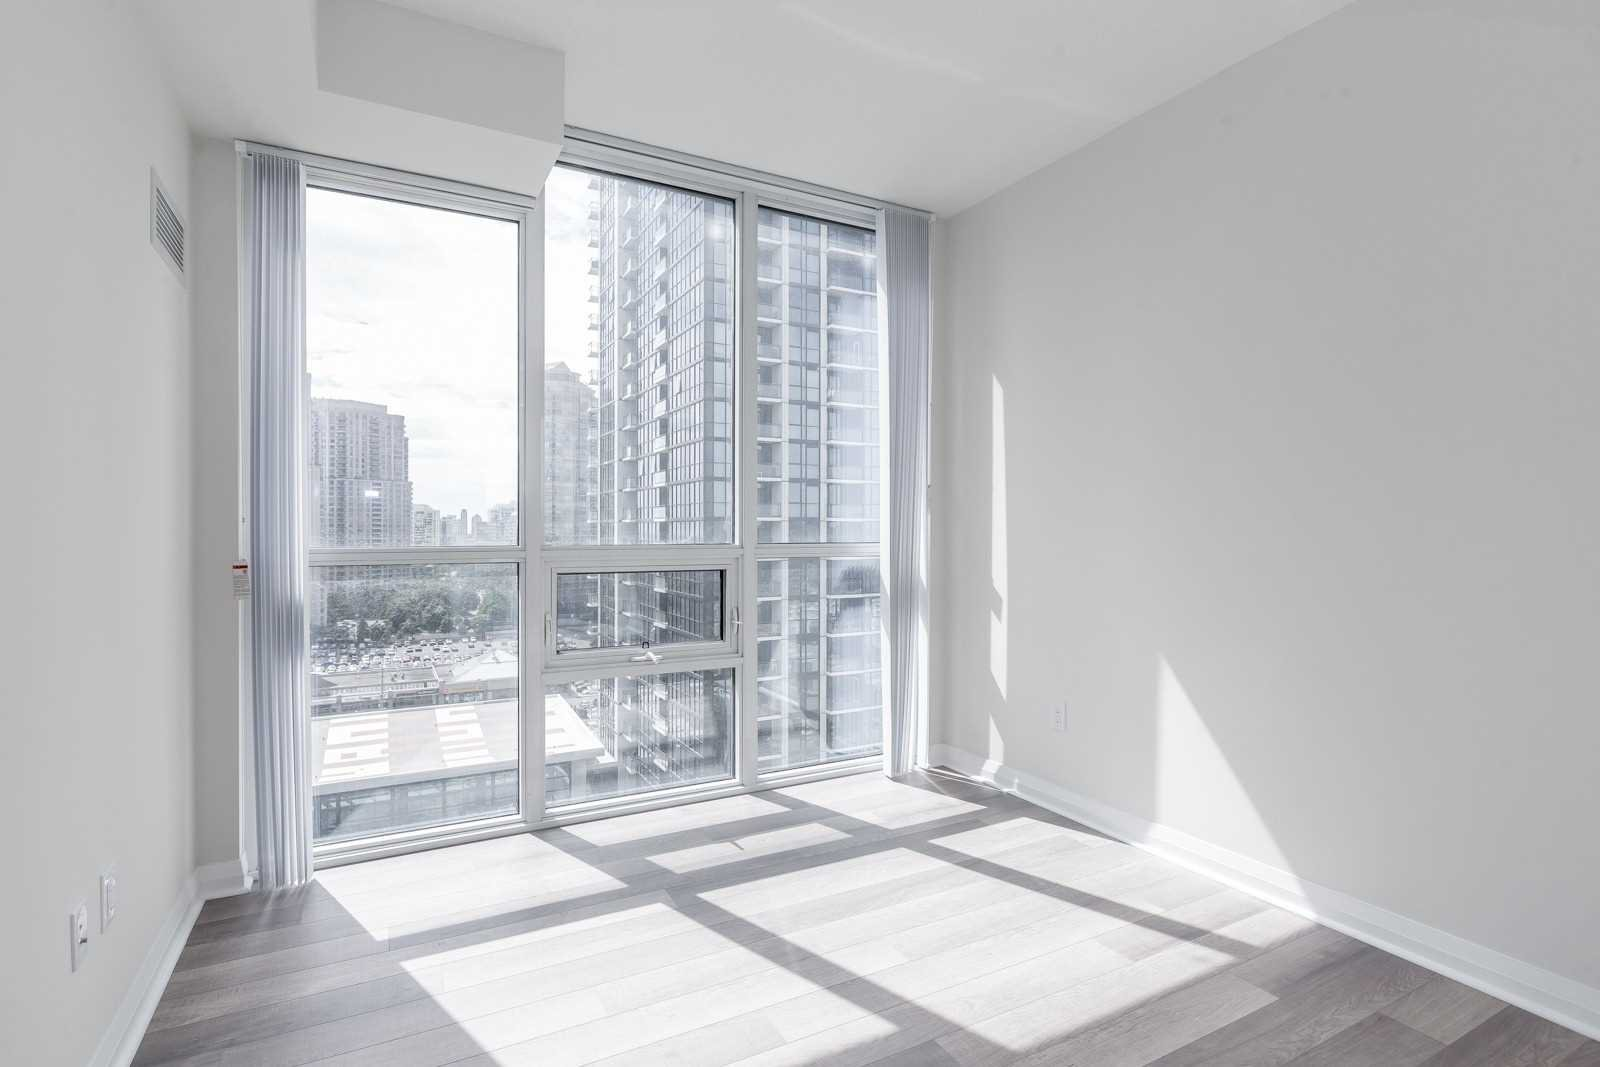 Photo 12: Photos: 1204 5025 Four Springs Avenue in Mississauga: Hurontario Condo for lease : MLS®# W4582092